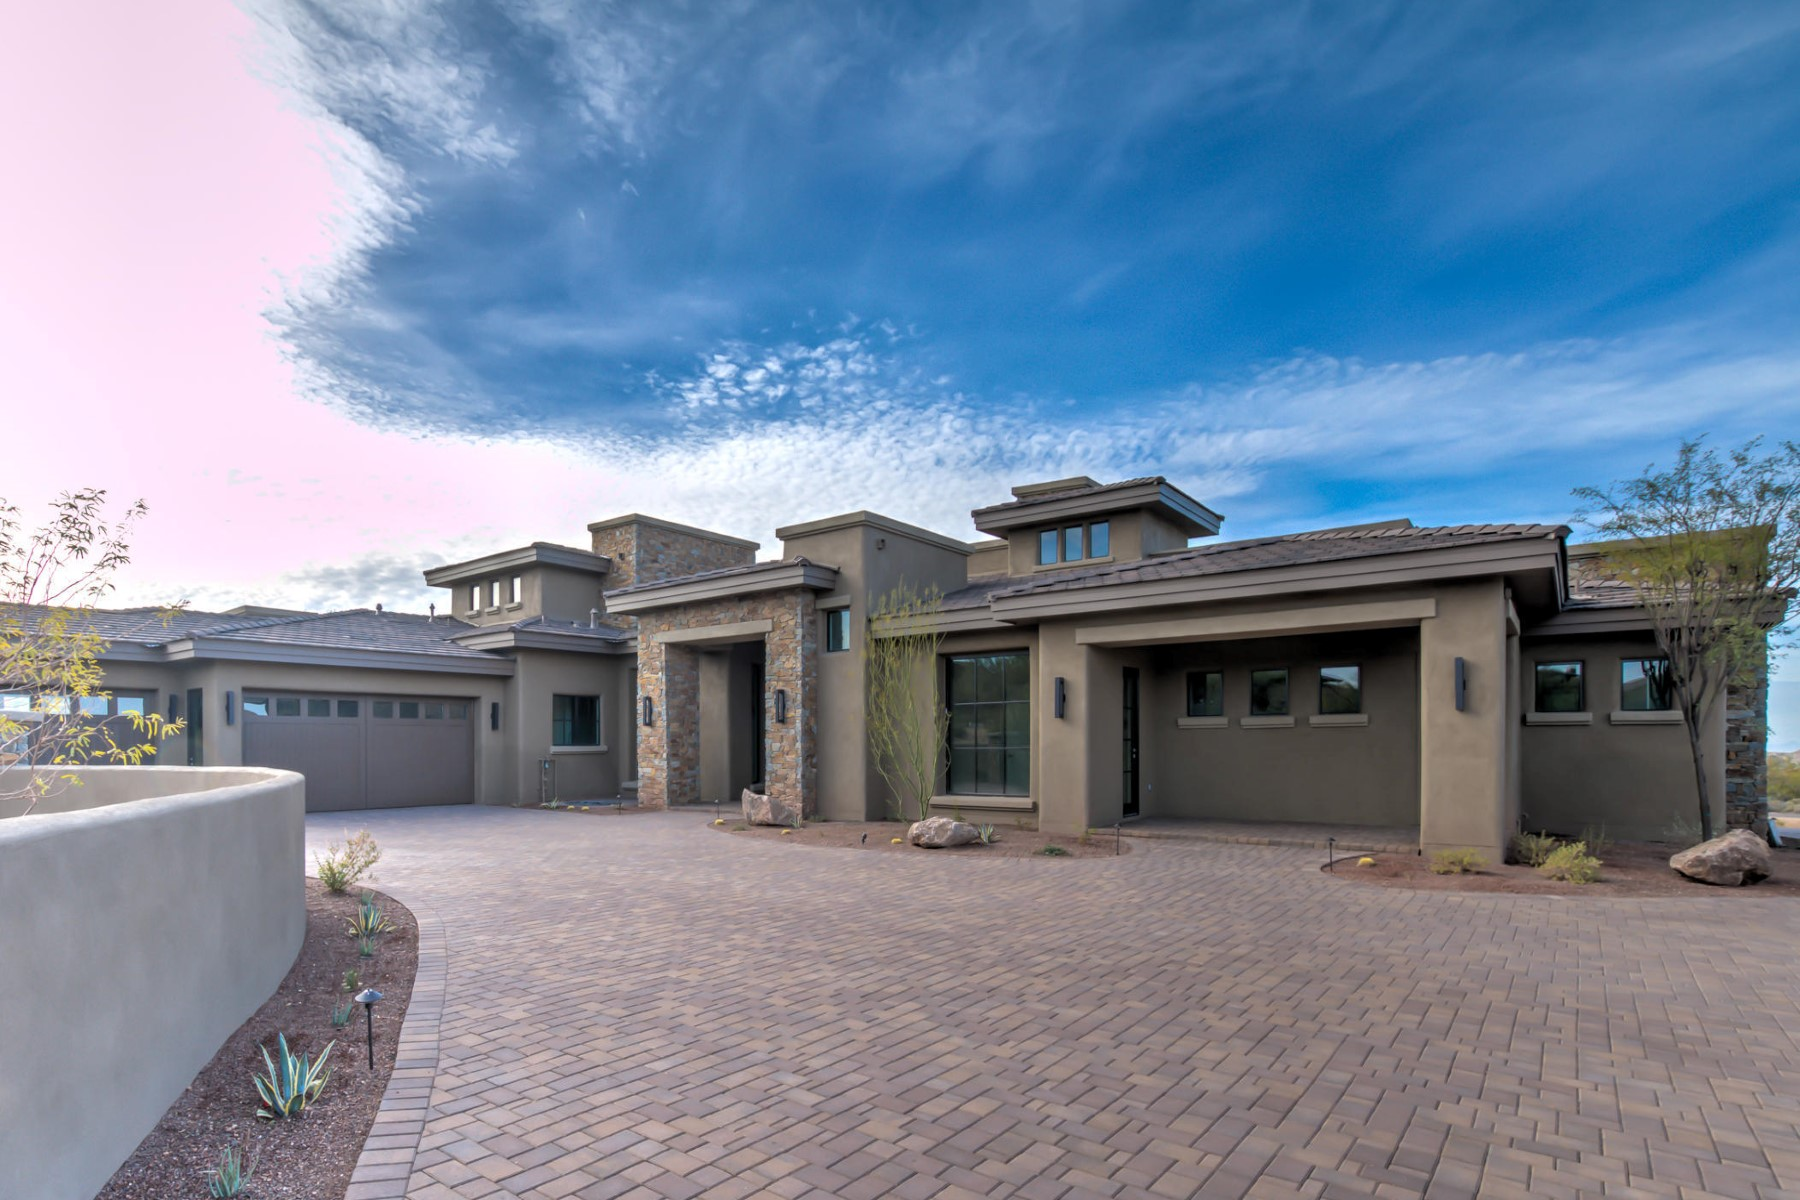 Single Family Home for Sale at Contemporary home within Desert Mountain's Village of Gambel Quail 9386 E Andora Hills Dr Scottsdale, Arizona, 85262 United States